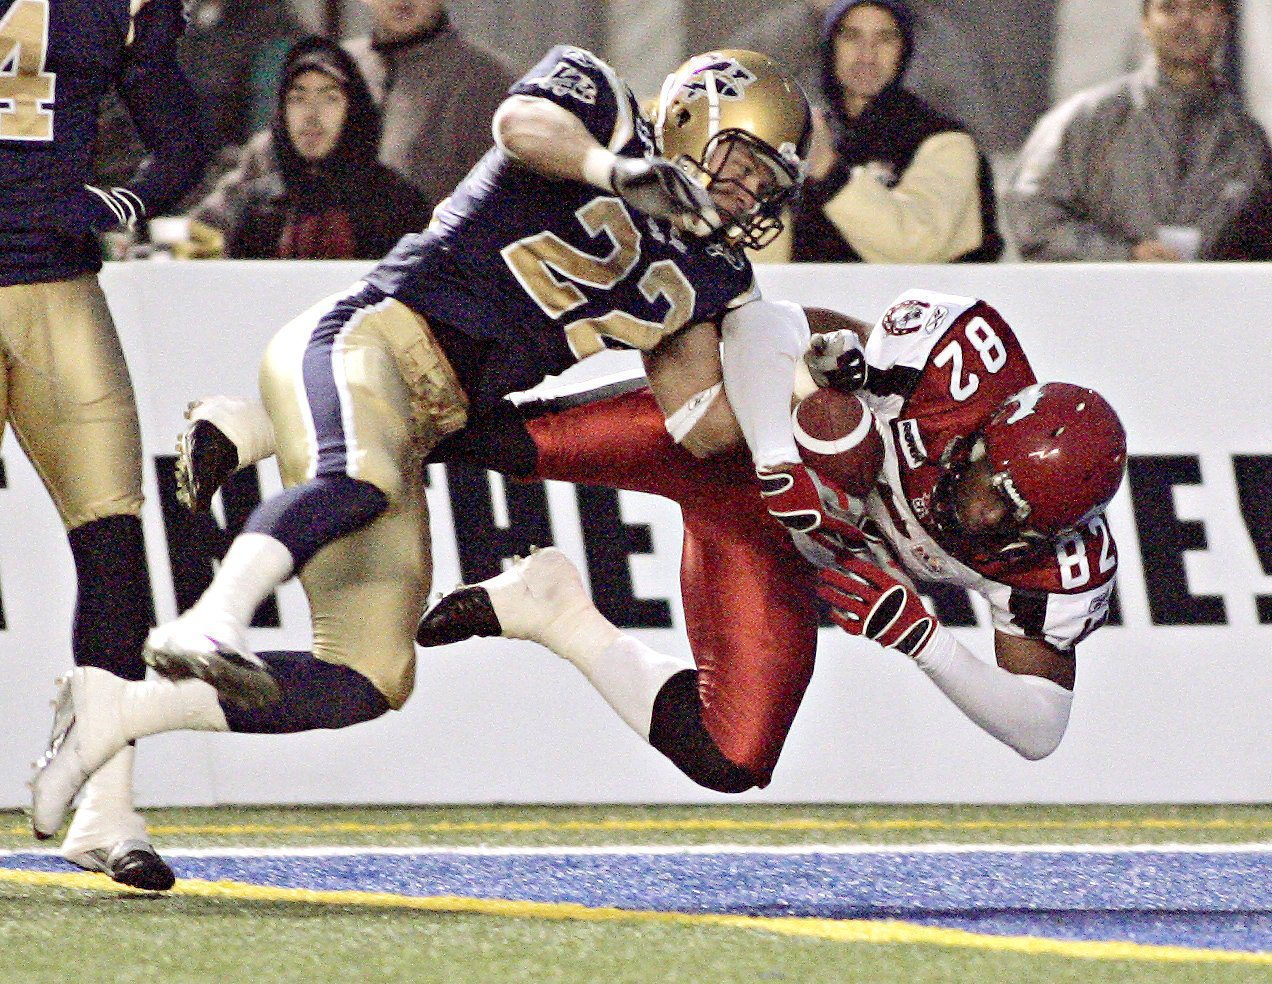 Calgary Stampeders' Nikolas Lewis (82) gets a touchdown as he collides with Winnipeg Blue Bombers' Shawn Gallant (22) during the second half CFL action in Winnipeg, on Sunday, August 30, 2005. (CP PHOTO/Marianne Helm)